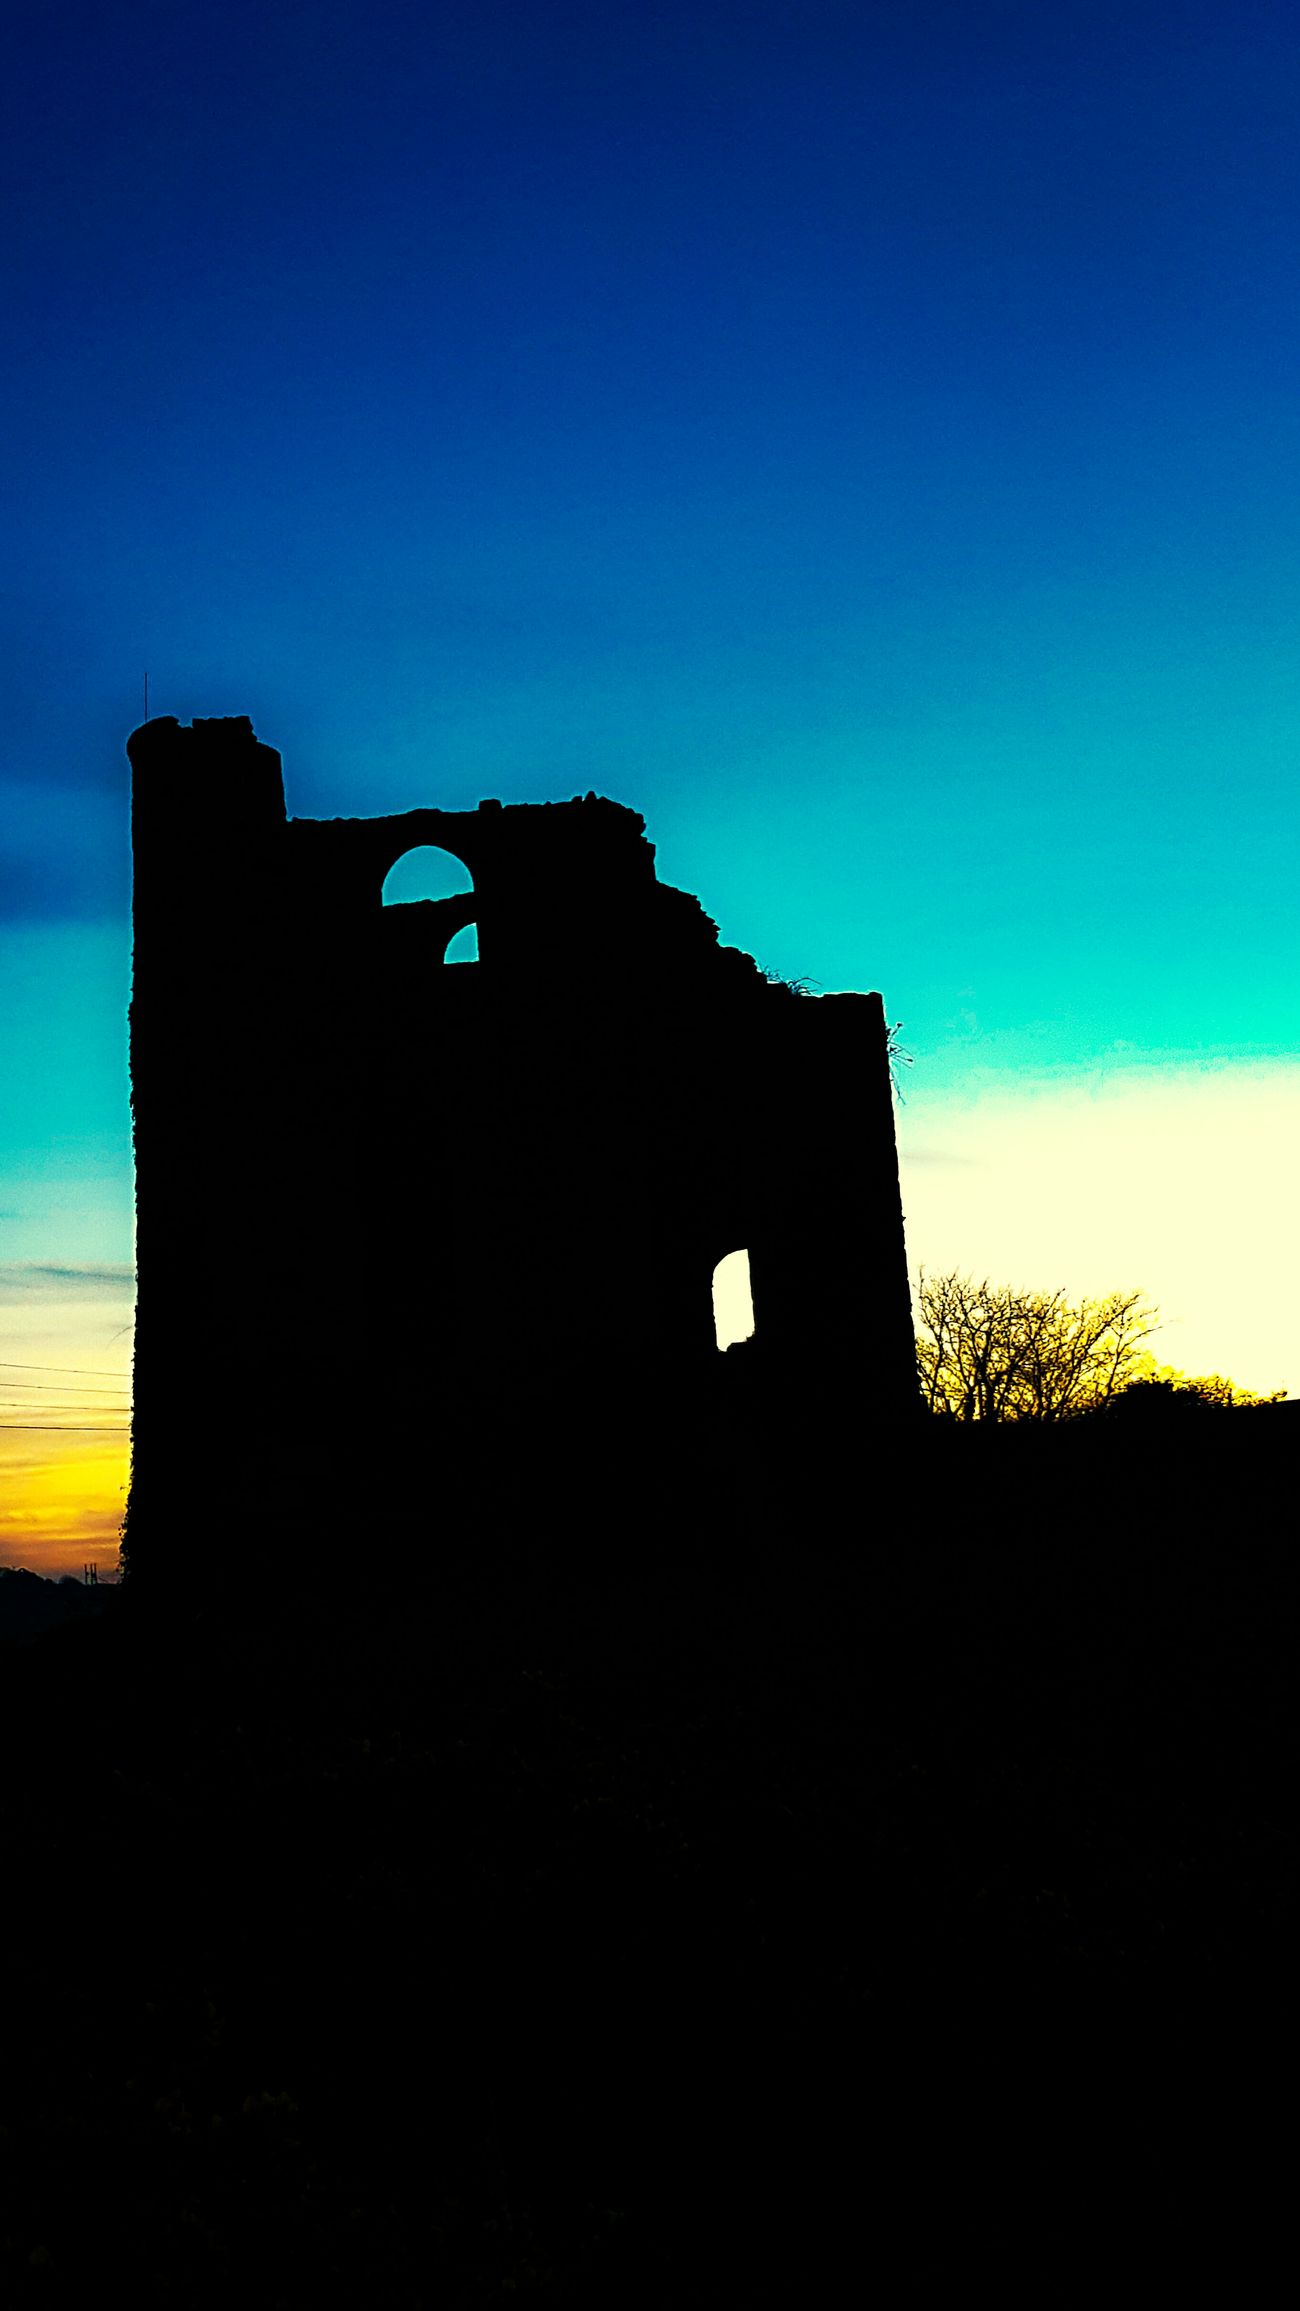 Sillouette of Mining country Sillouettes And Sunsets Architecture Silhouette_collection Sunset Sillouettes Scenics Old Ruin Sillhouttes And Sky History Mining Industry Mining Site Stone Structure Sunlight Sunset_collection Mining Heritage Outdoors No People Silhouette Day Sunsets Mining Village Multi Colored Silhouette Sky Multilayered Multicoloured Mining country Mining Stone building Cornwall Carnbrea